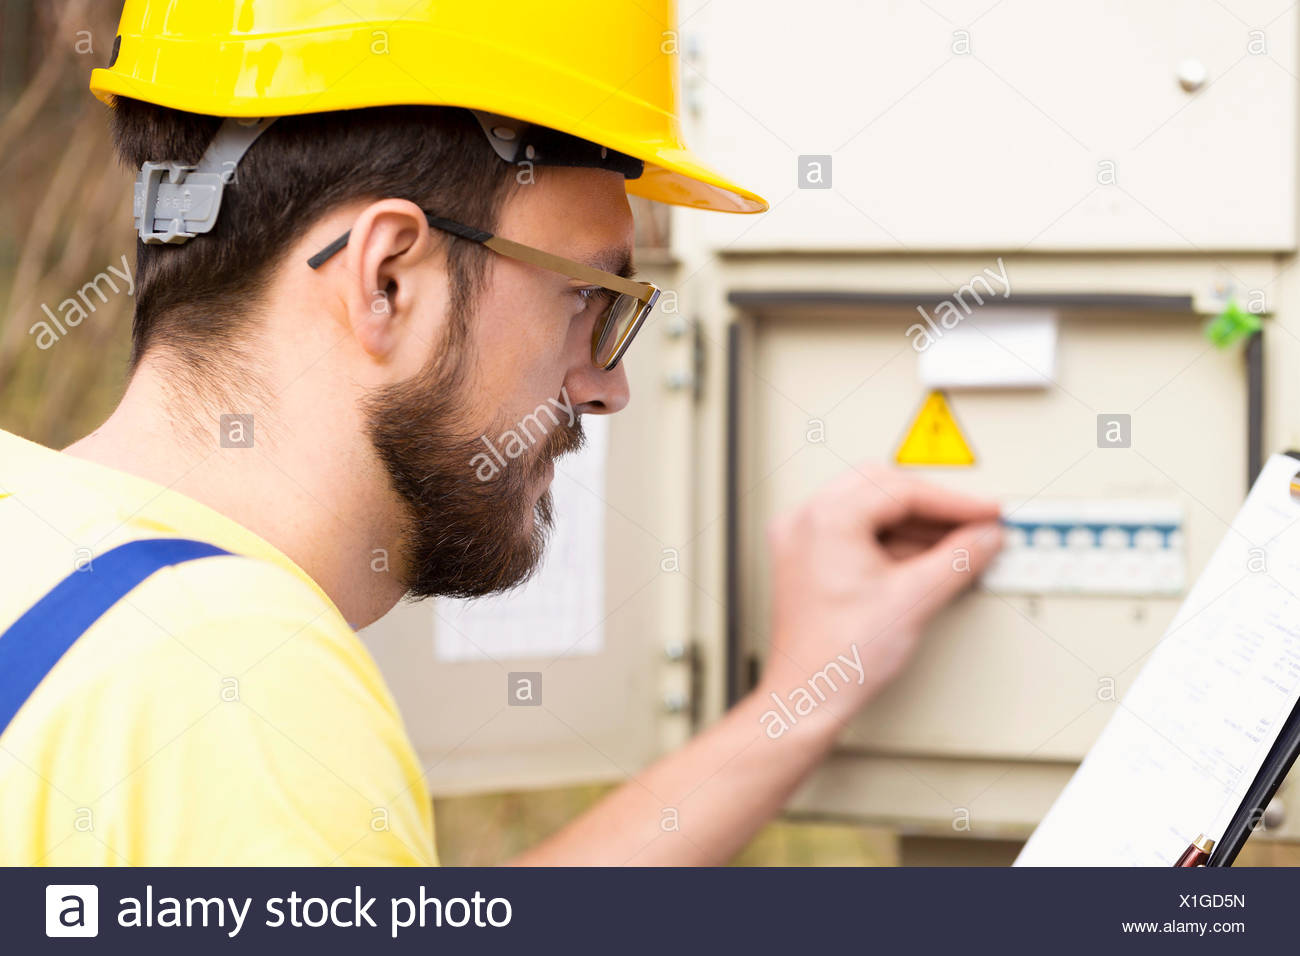 electrician checking fuse box - Stock Image